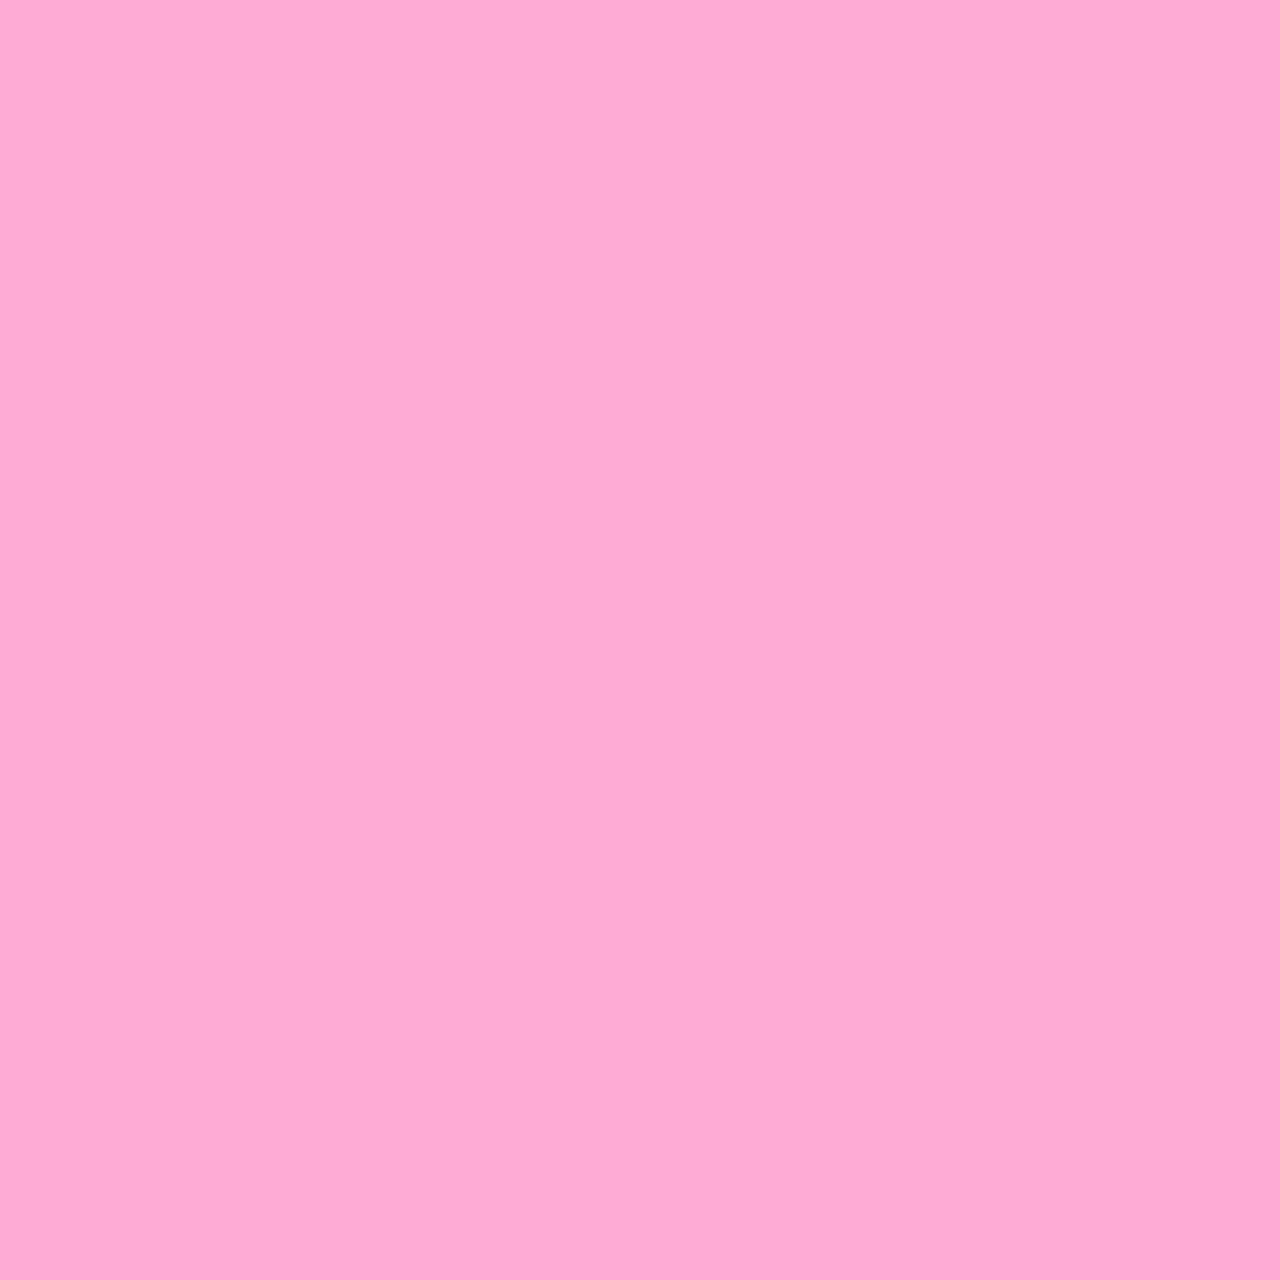 #4815 Rosco Gels Roscolux CalColor 15 Pink, 20x24""